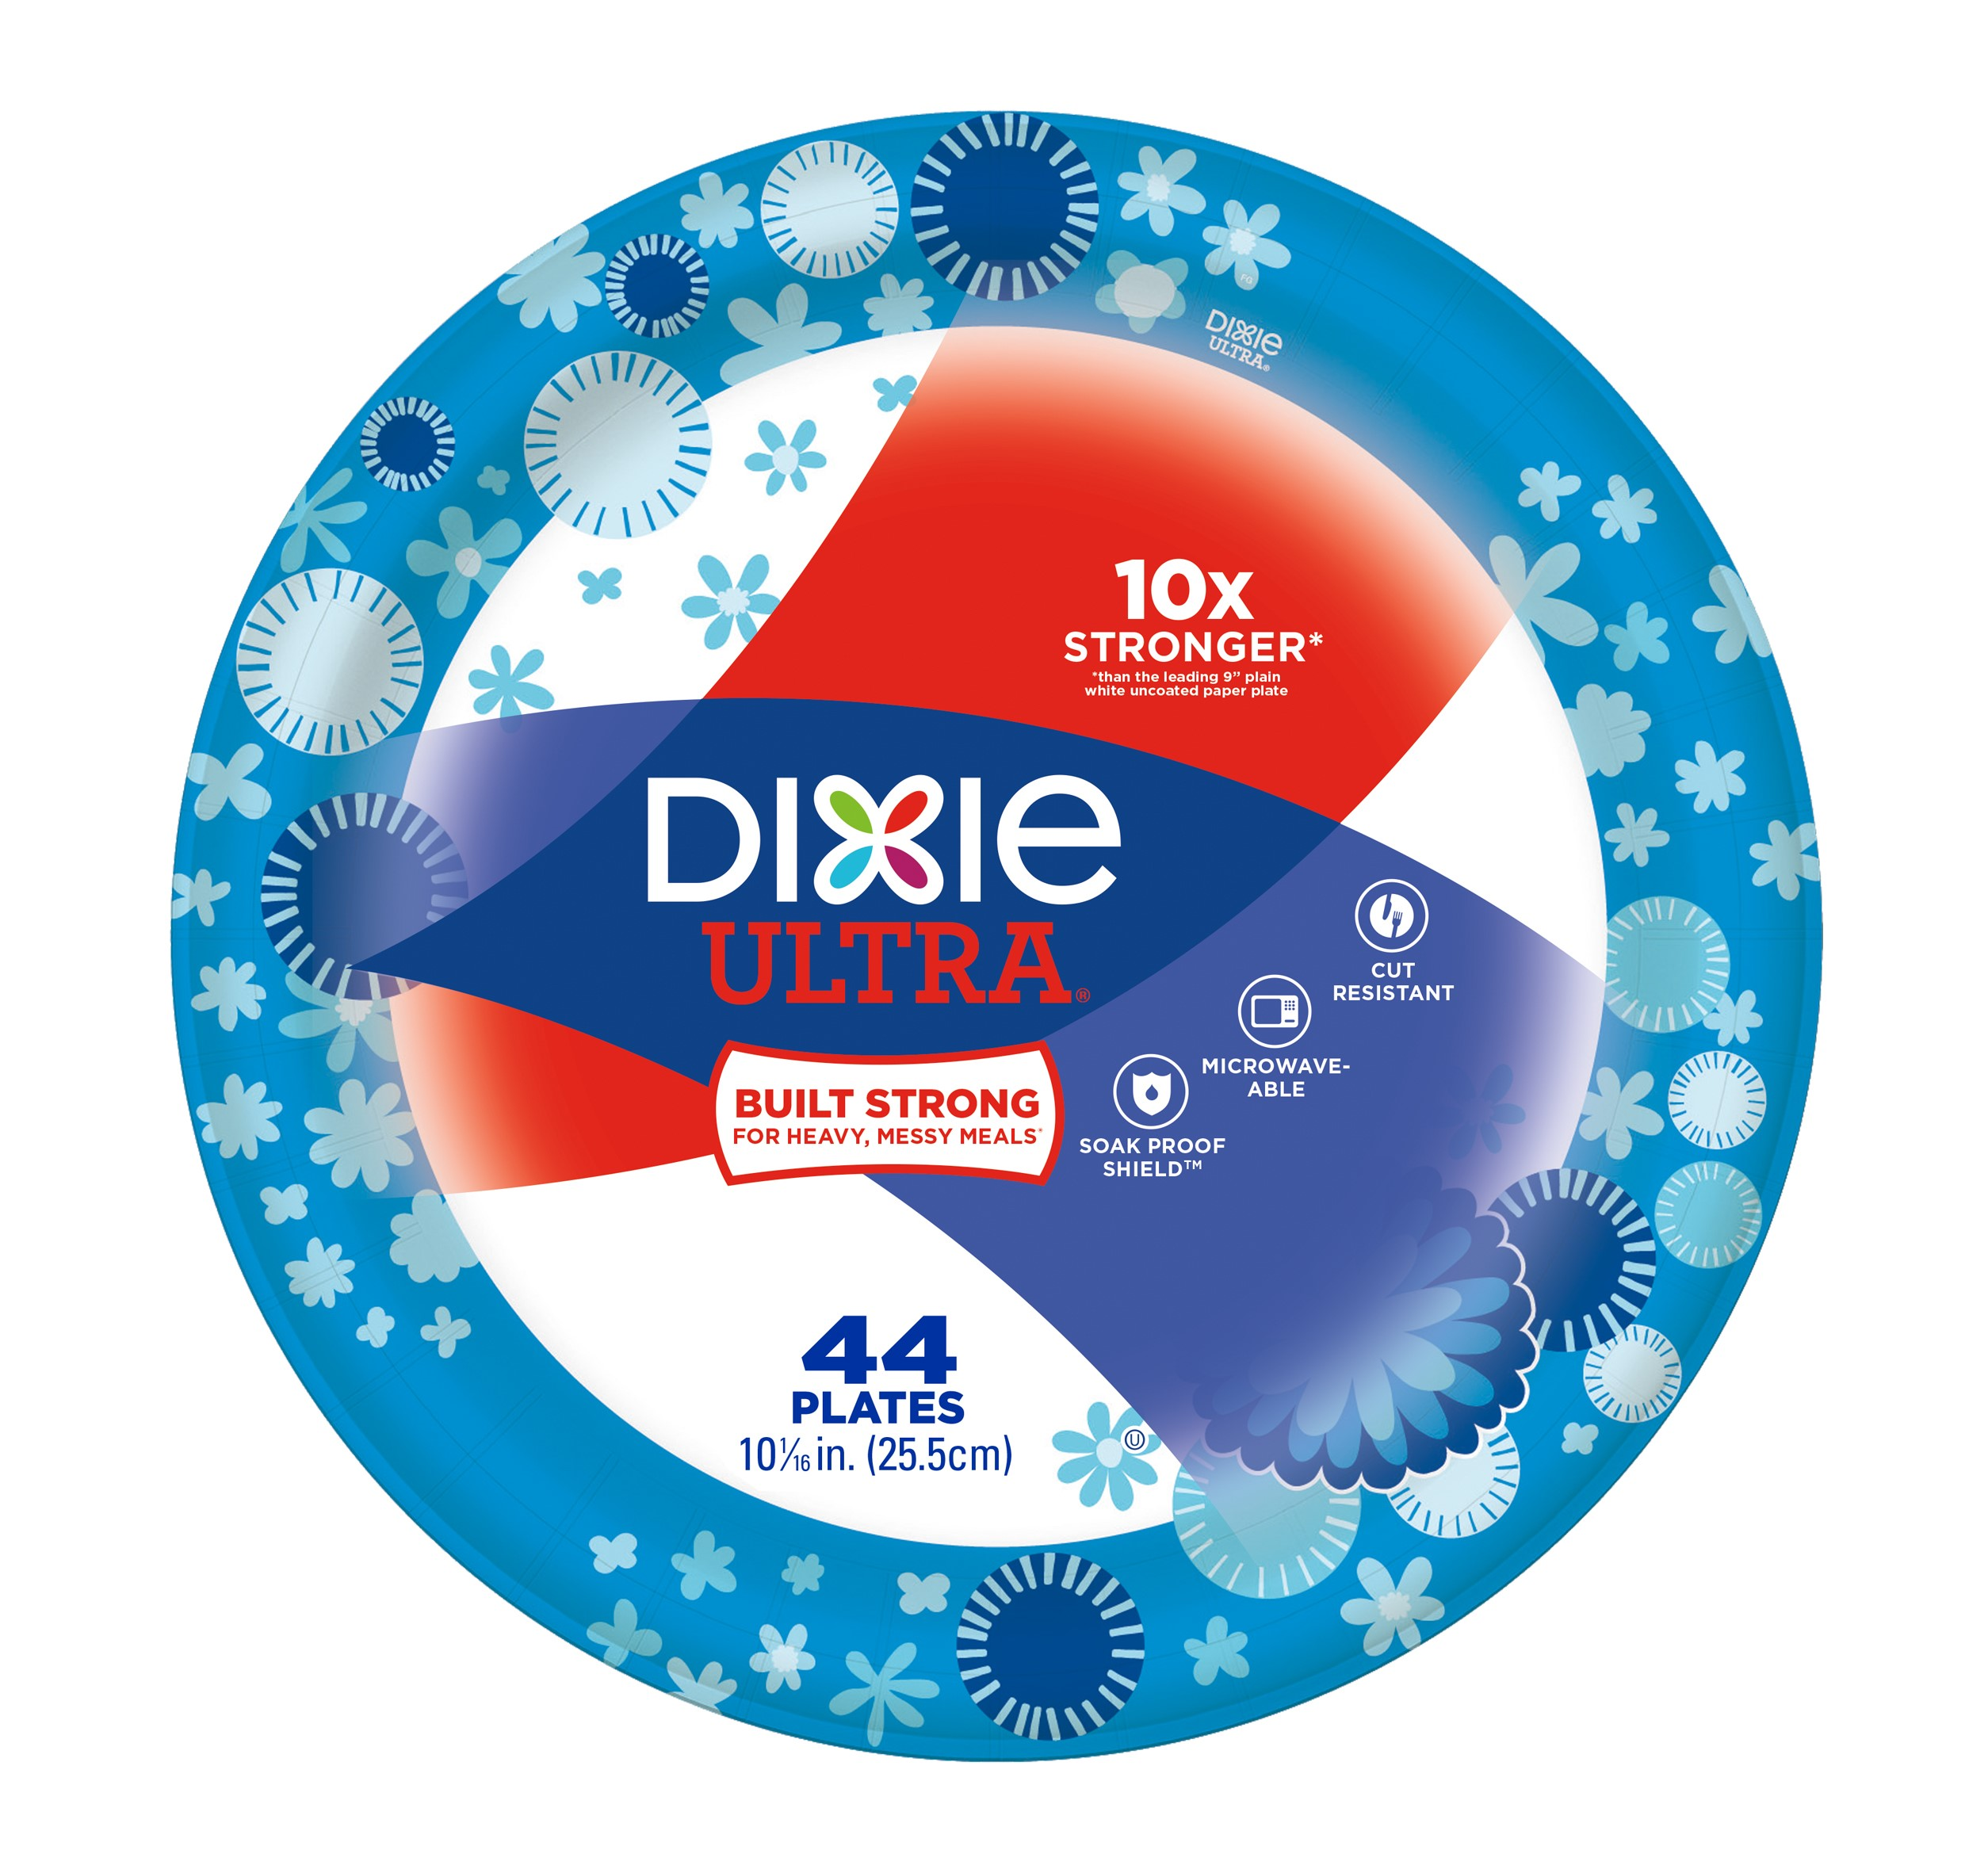 Dixie Ulta Plates 10 1/16 in - 44 CT